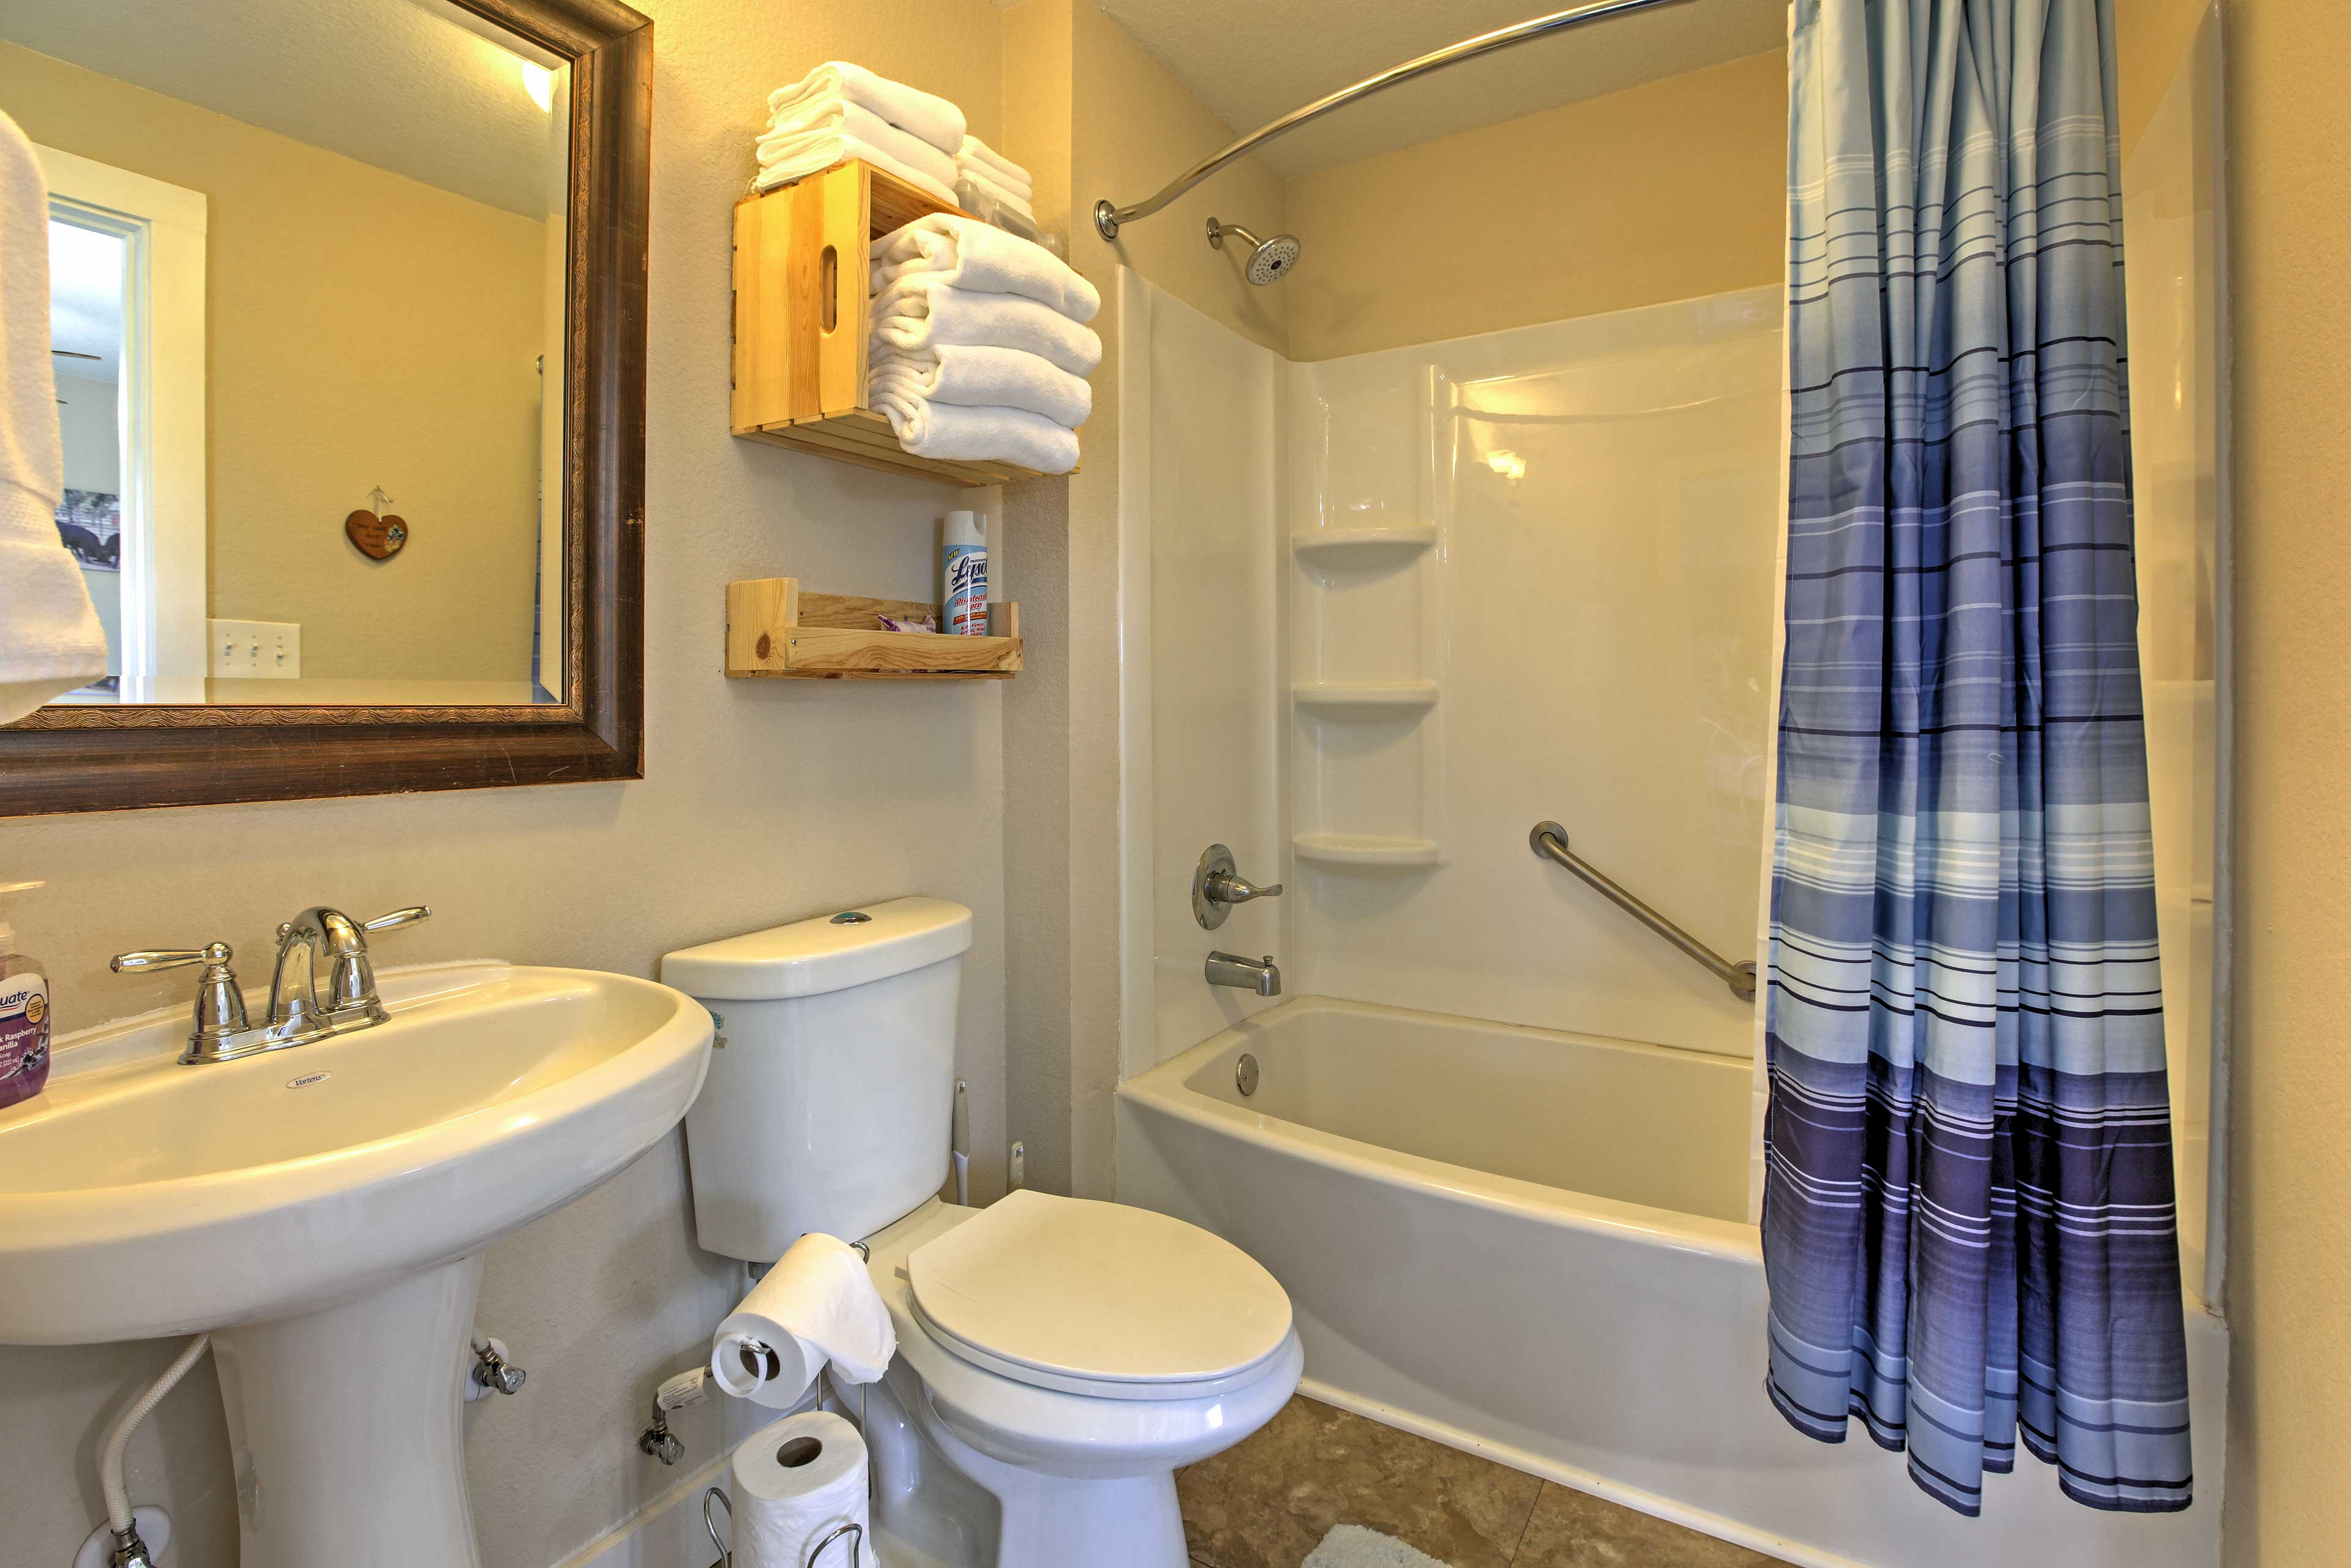 Freshen up in the home's bathroom, which boasts a shower/tub combo.